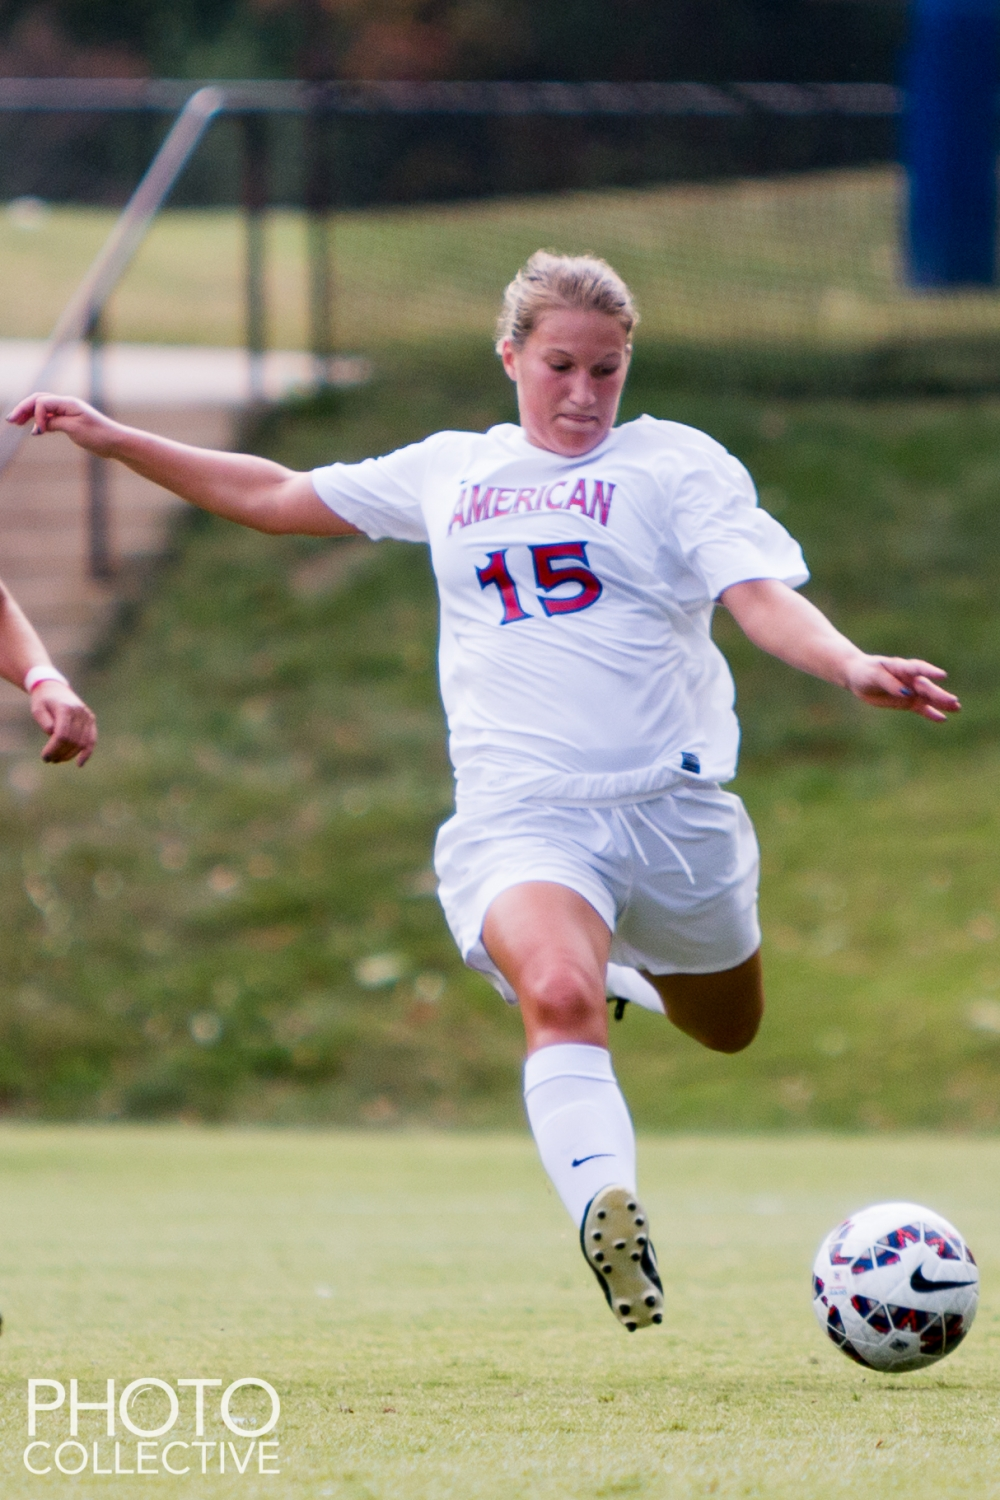 AU Women's soccer falls short of goal in Senior Day matchup with Bucknell